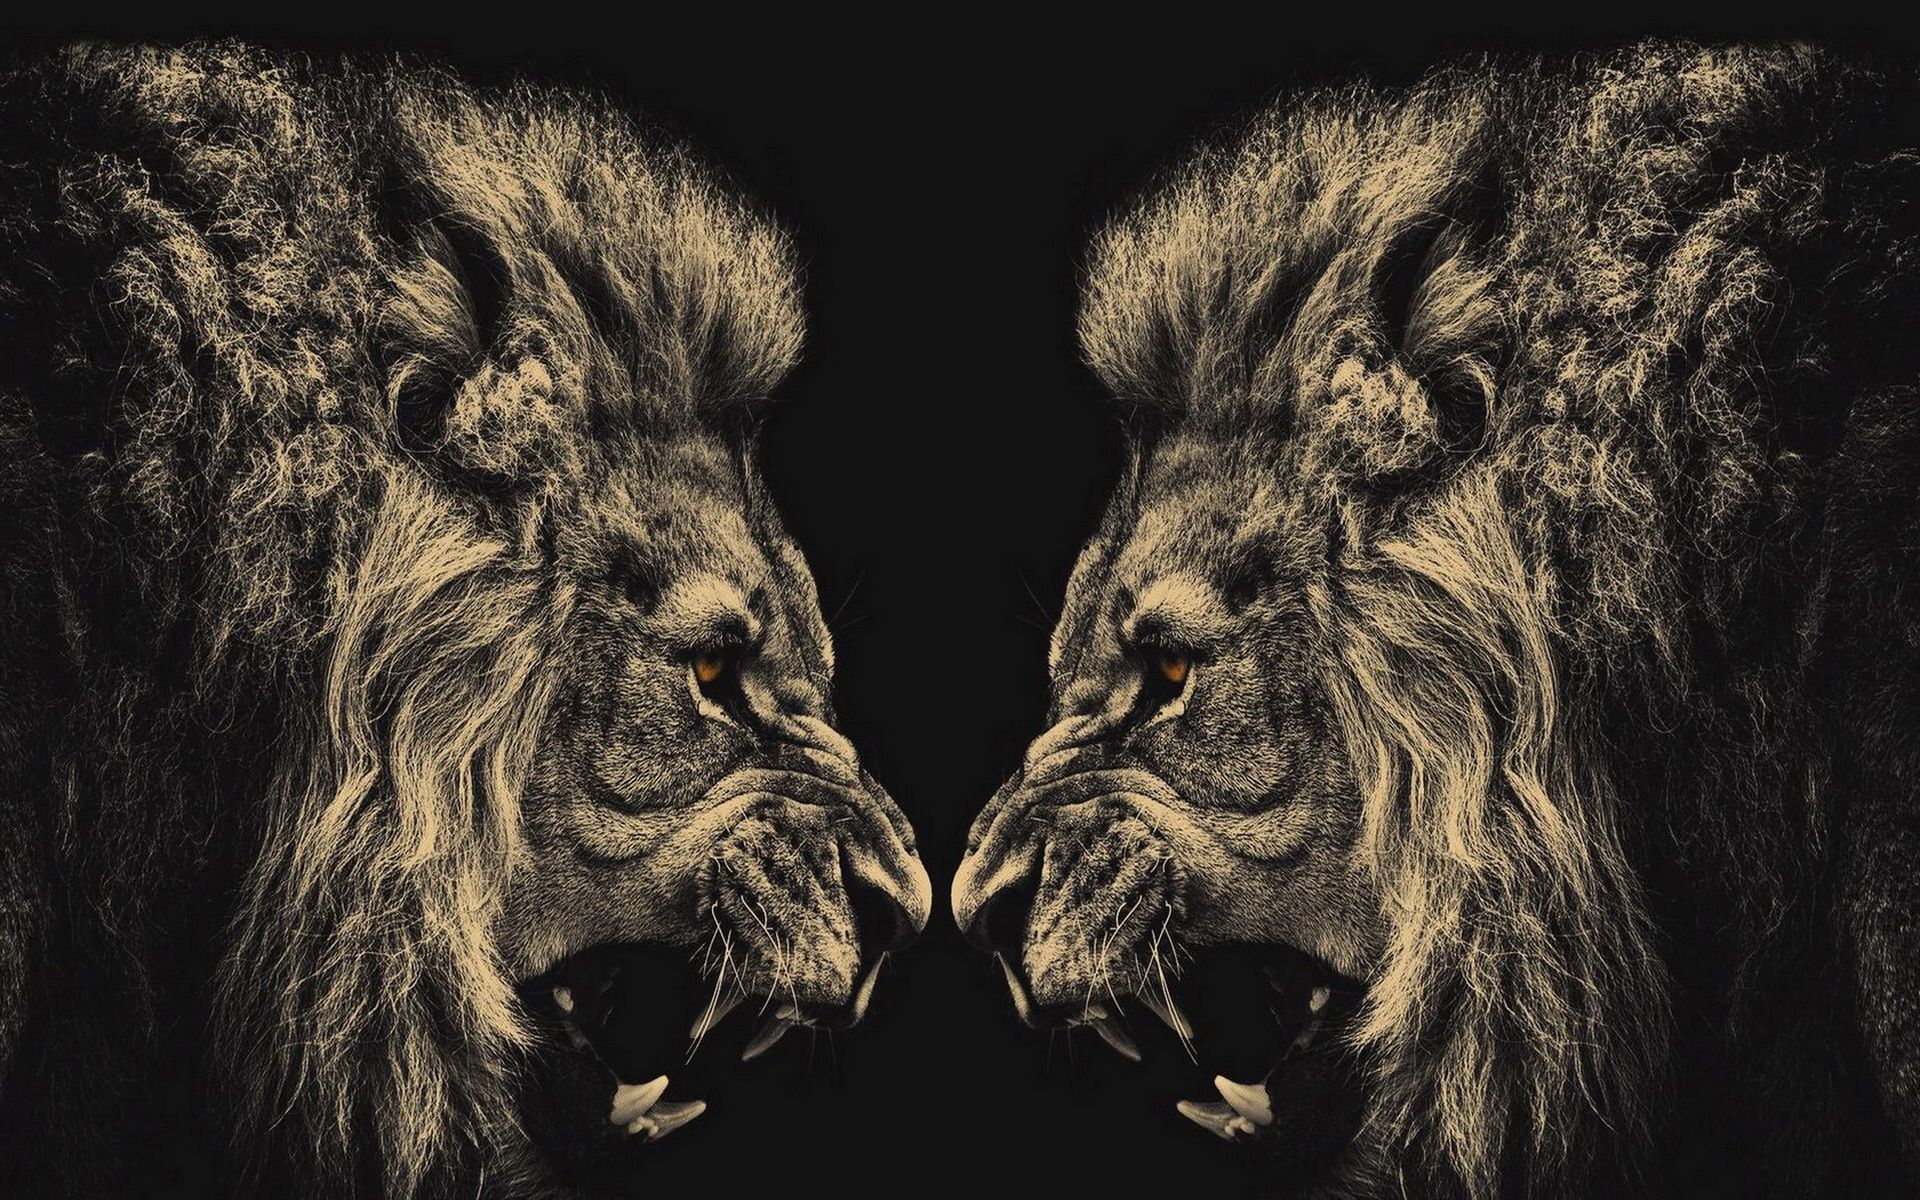 Lion HD Wallpaper for download